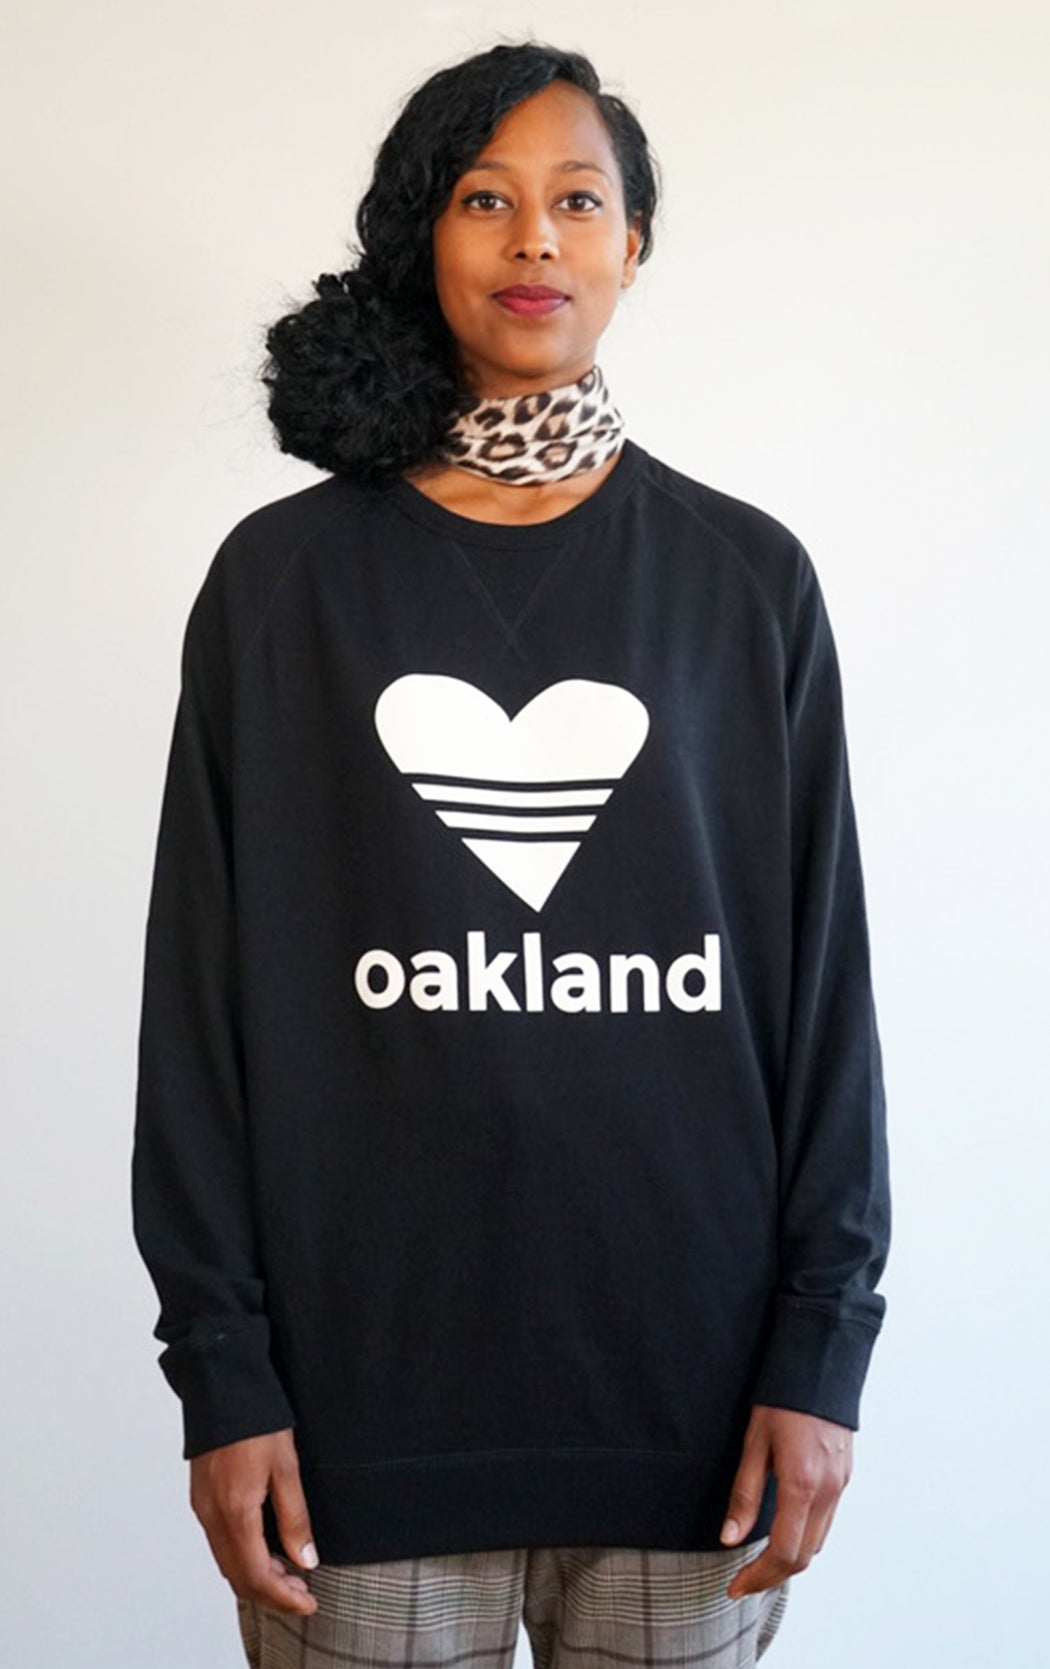 black super soft love oakland sweatshirt in a cool crew neck style made in a soft cotton blend with love oakland heart graphic on front